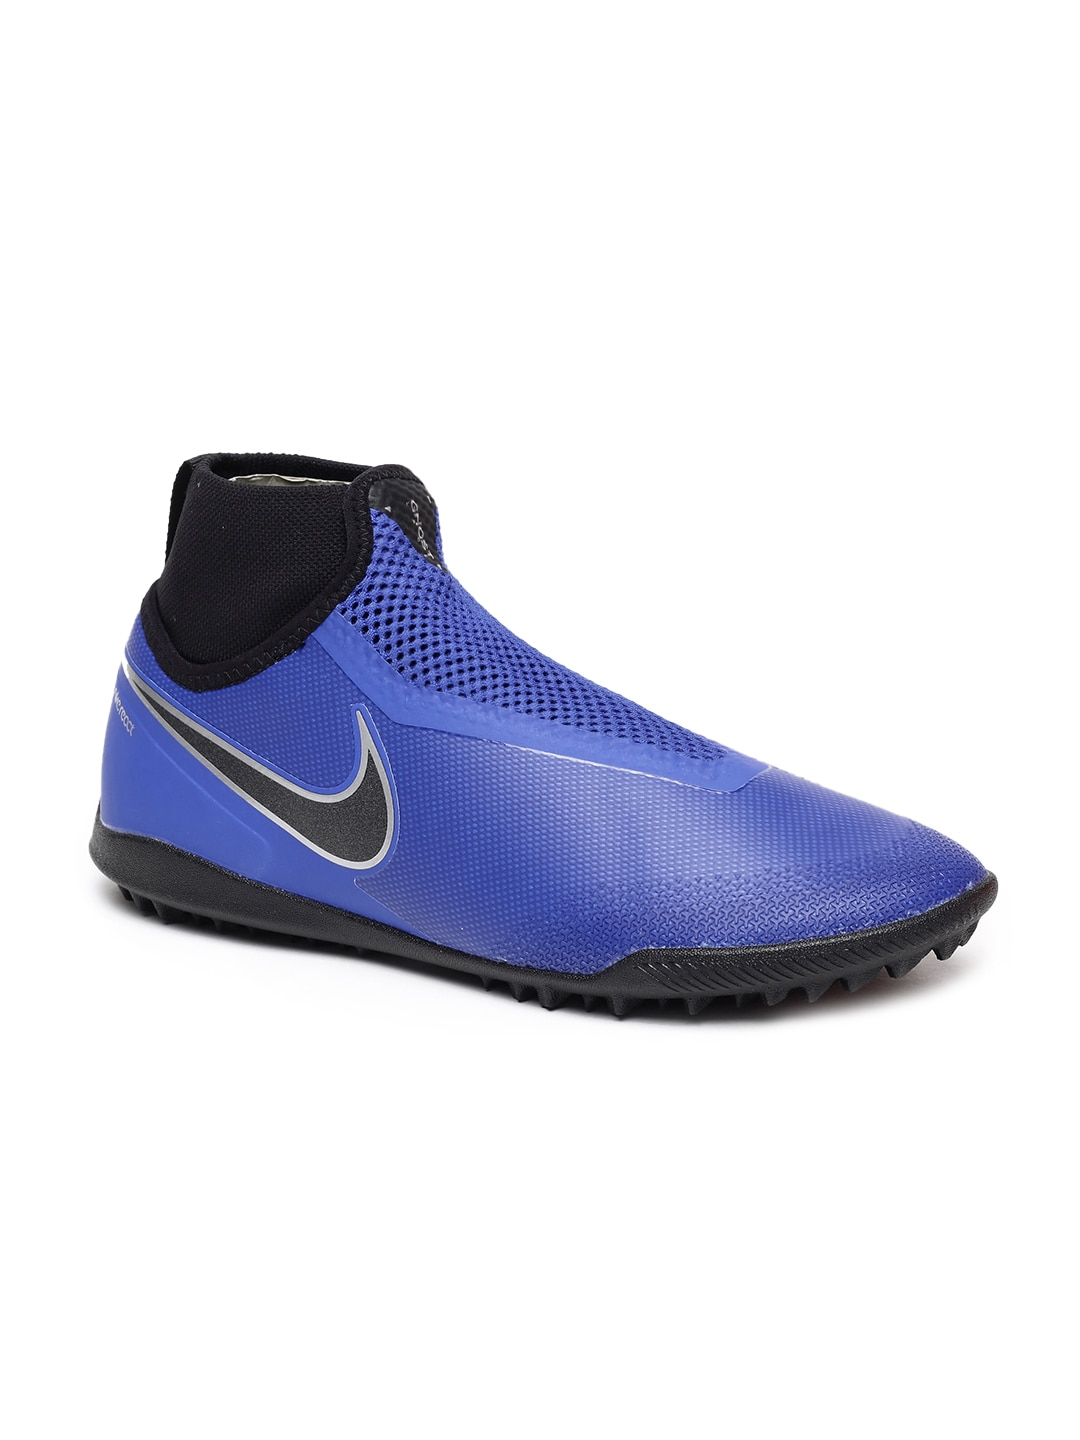 d84fc97fa07 Nike - Shop for Nike Apparels Online in India